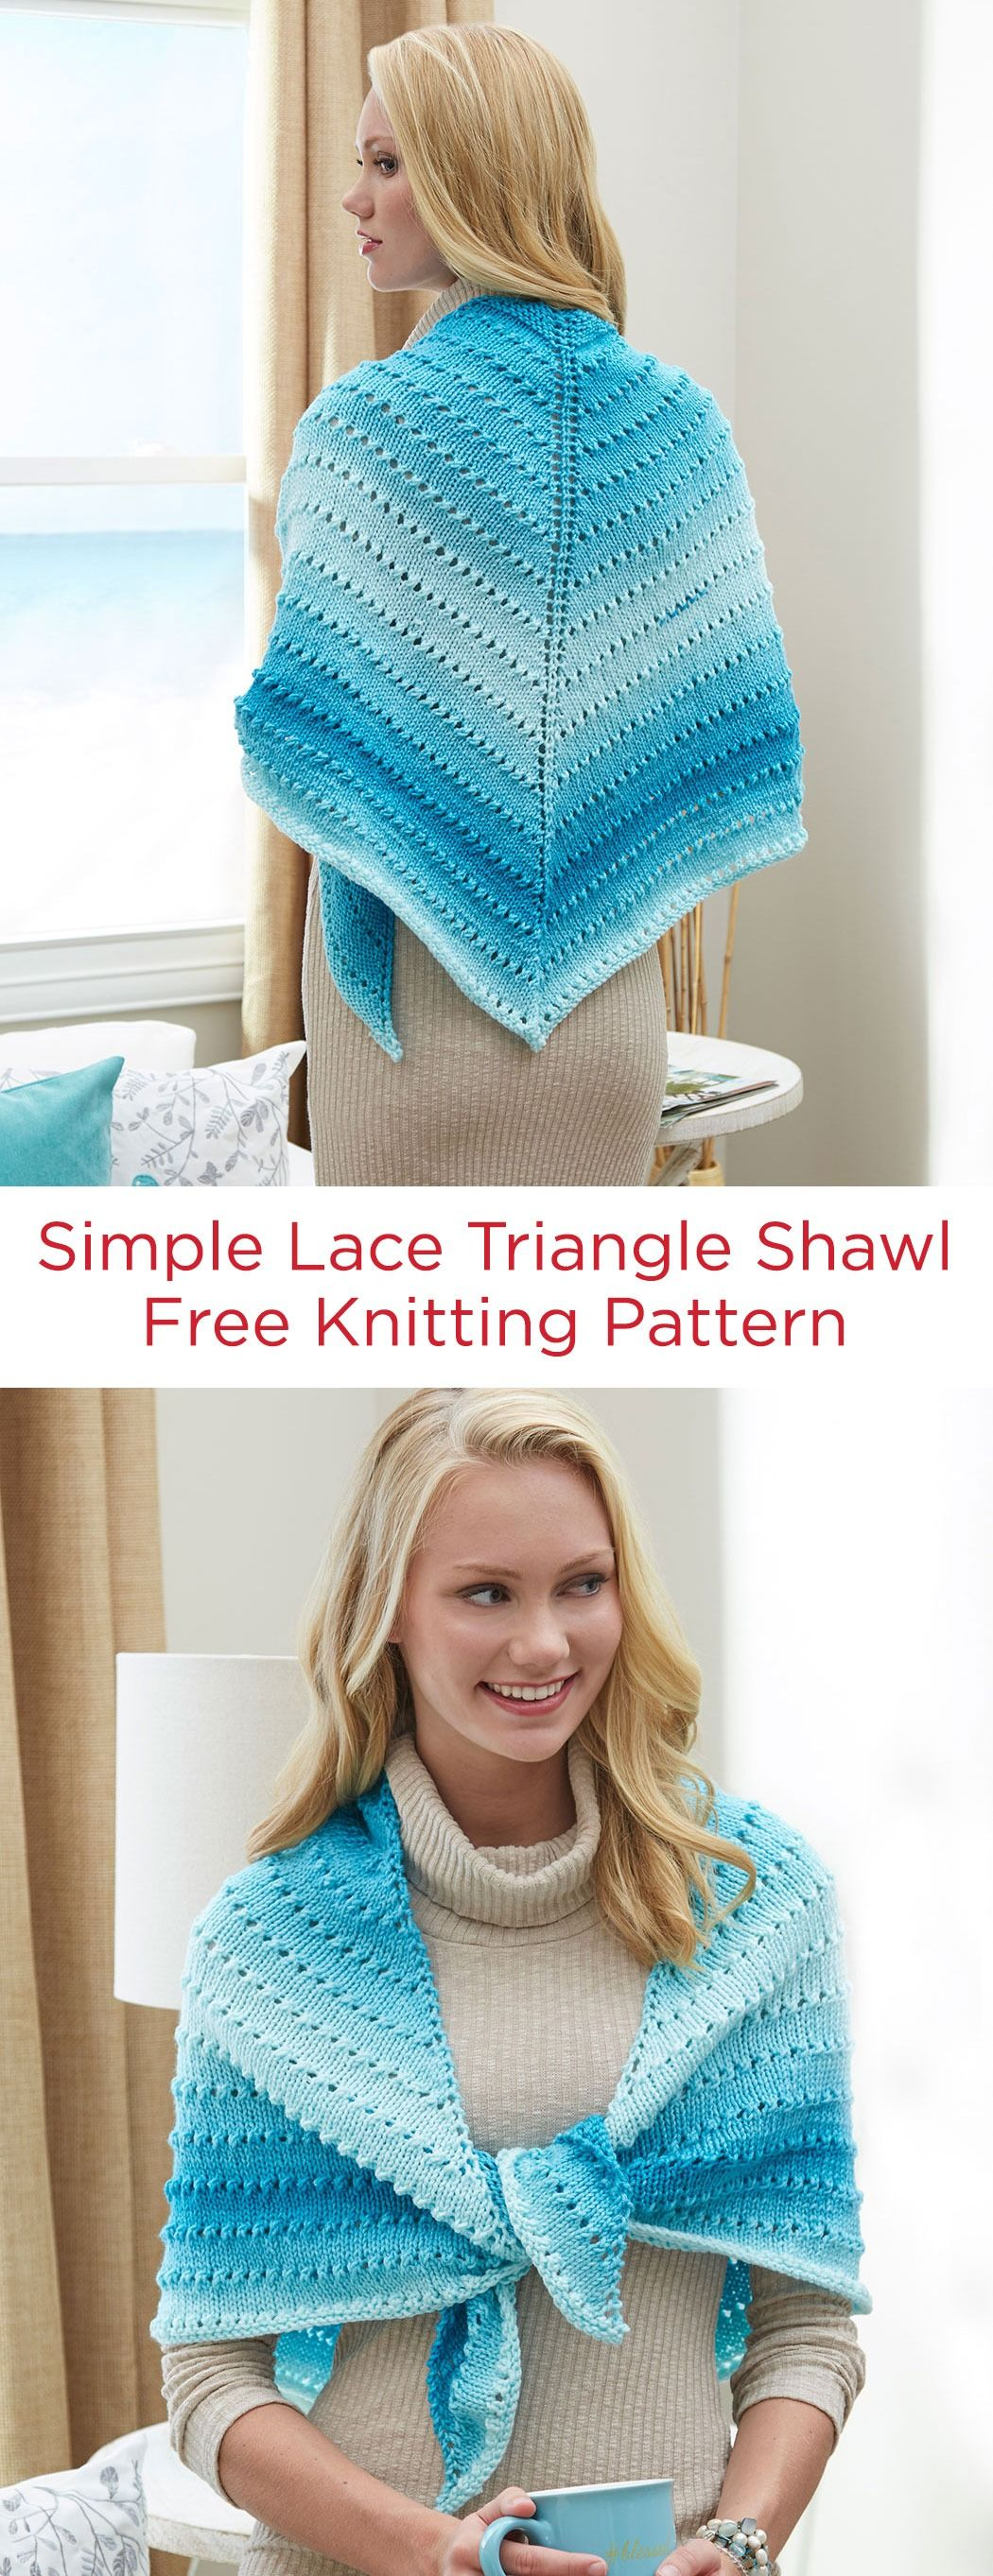 Simple Lace Triangle Shawl Free Knitting Pattern in Red ...